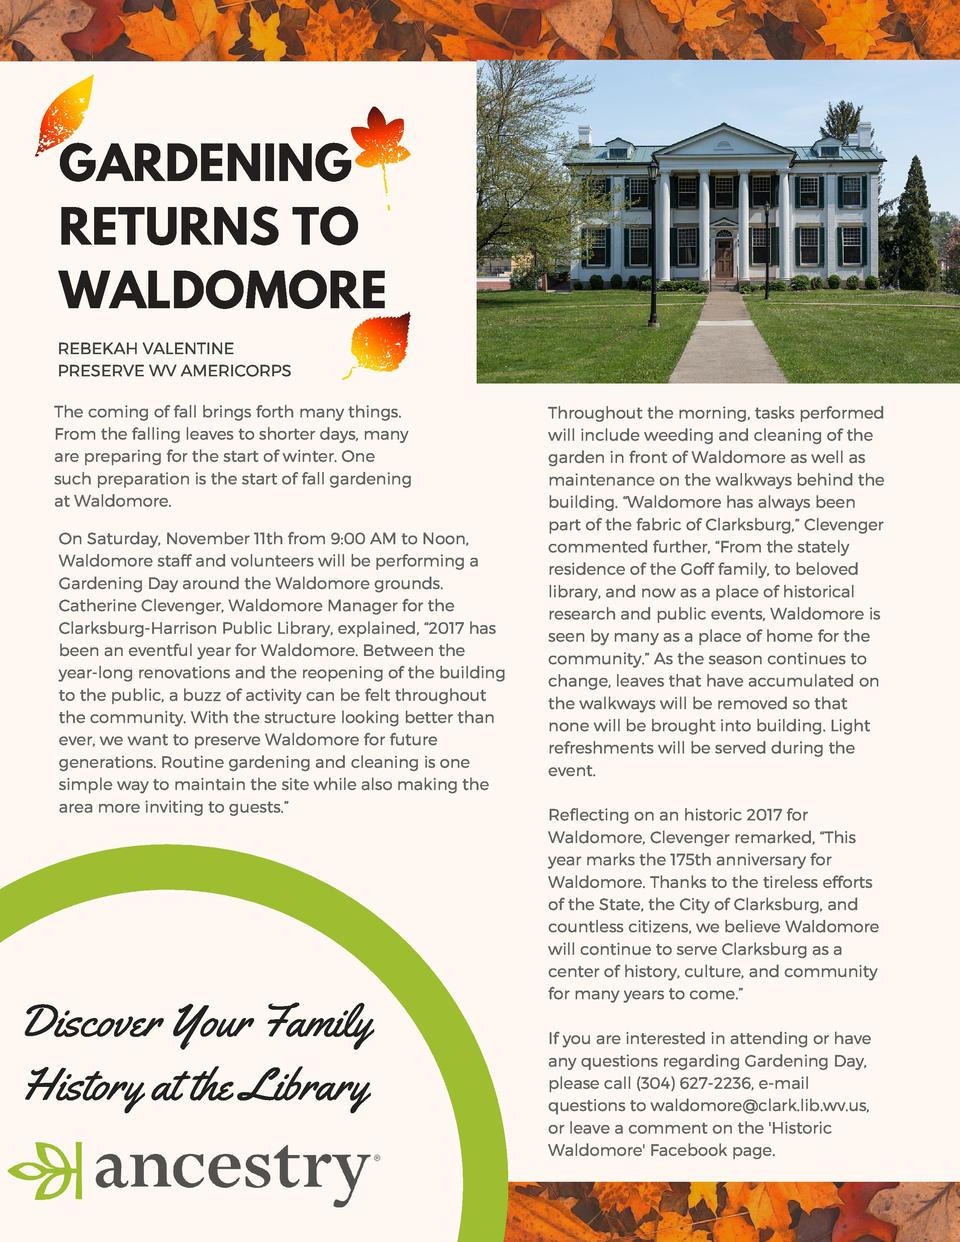 GARDENING RETURNS TO WALDOMORE REBEKAH VALENTINE PRESERVE WV AMERICORPS The coming of fall brings forth many things. From ...